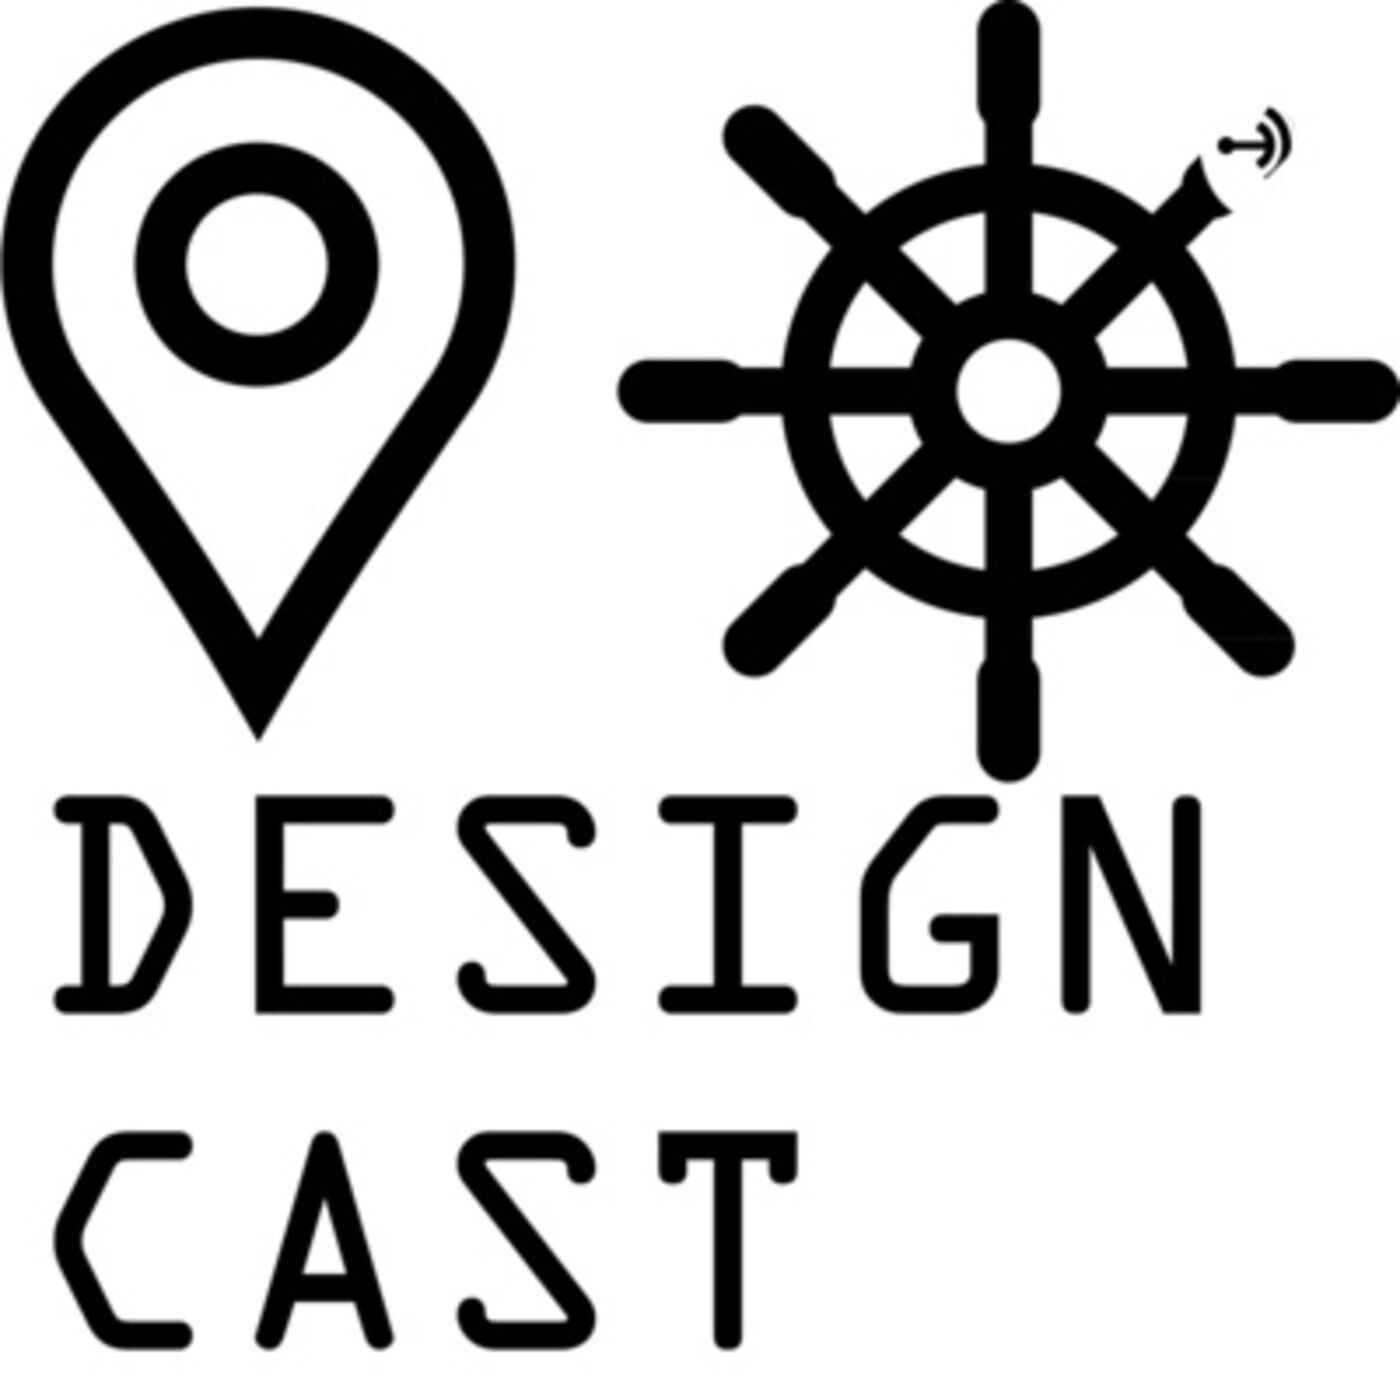 Design and Beyond with Jason Reagin, host of Design Cast, and Design Teacher Kurt Carlson